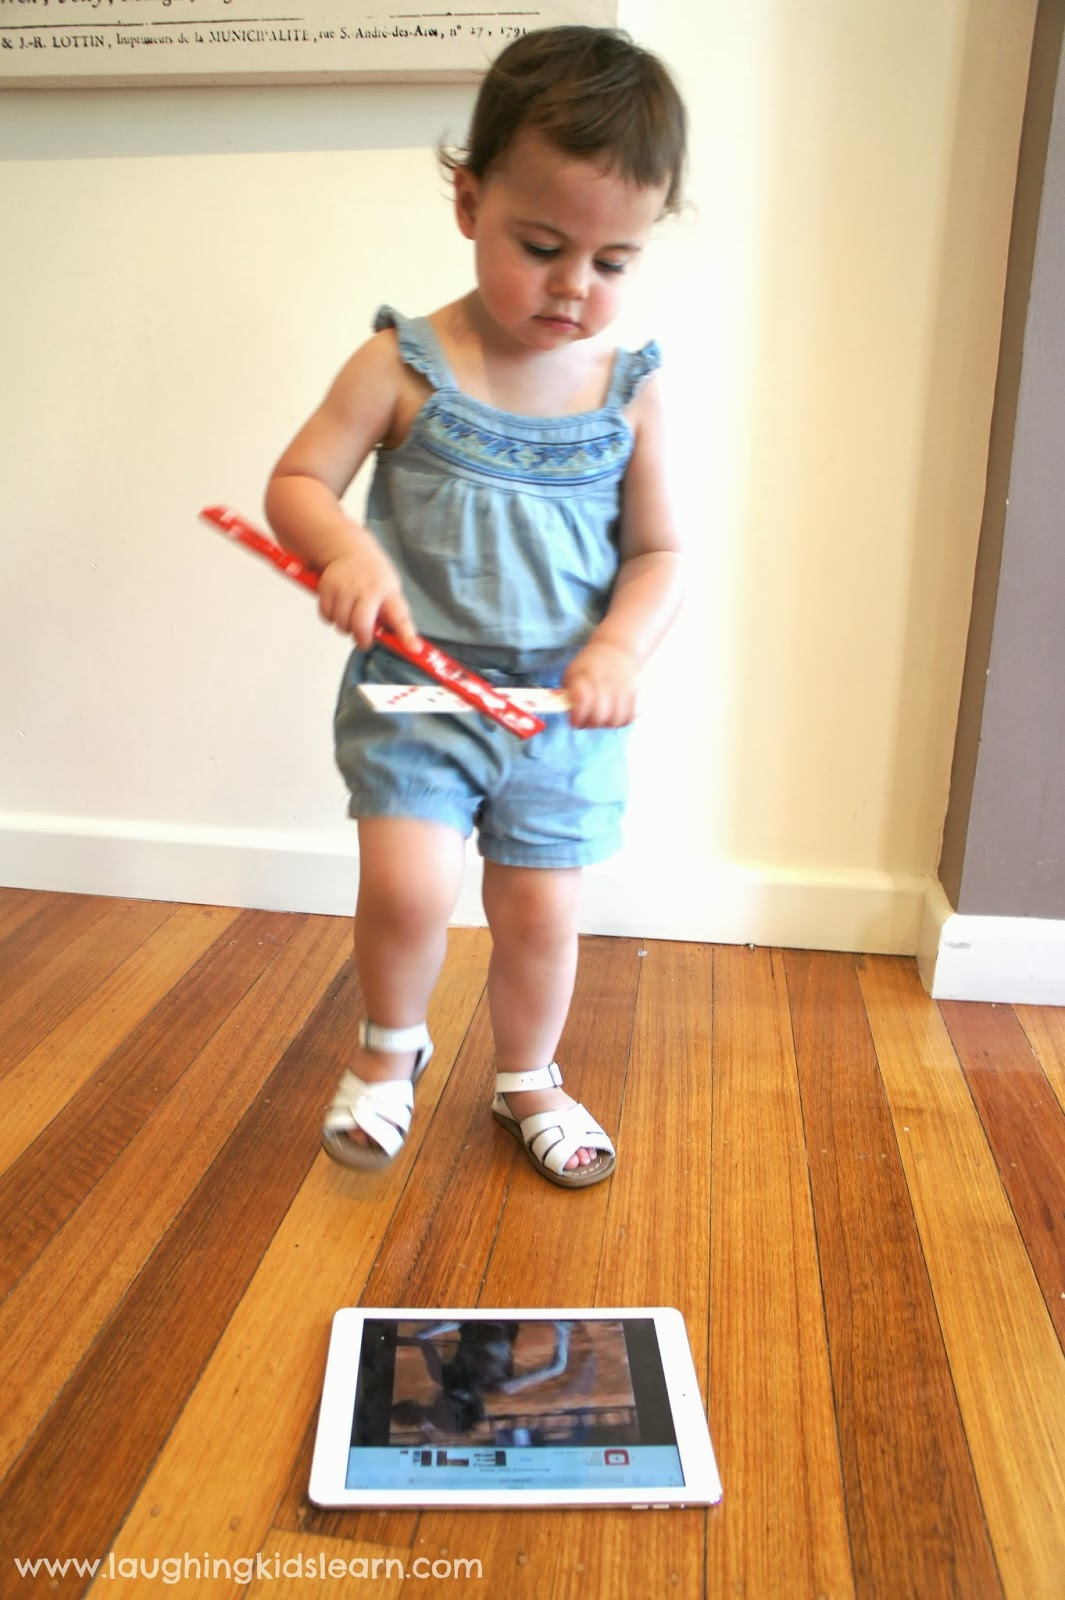 Dancing and playing with homemade Aboriginal clapping sticks for Australia Day